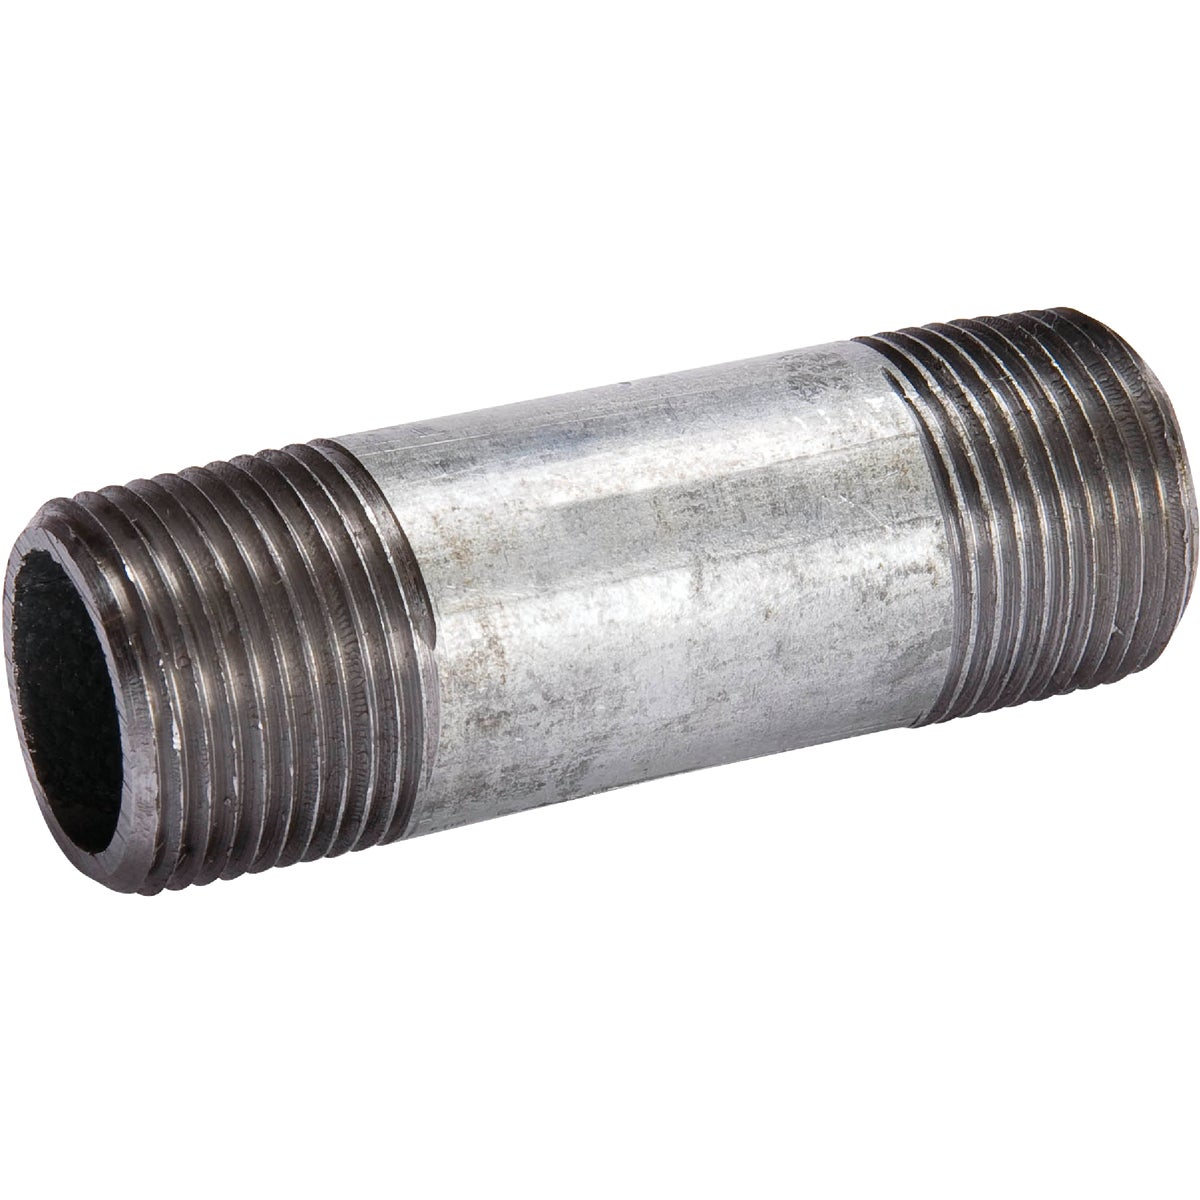 1/2X10 GALV NIPPLE - 10414 by Southland Pipe Nippl